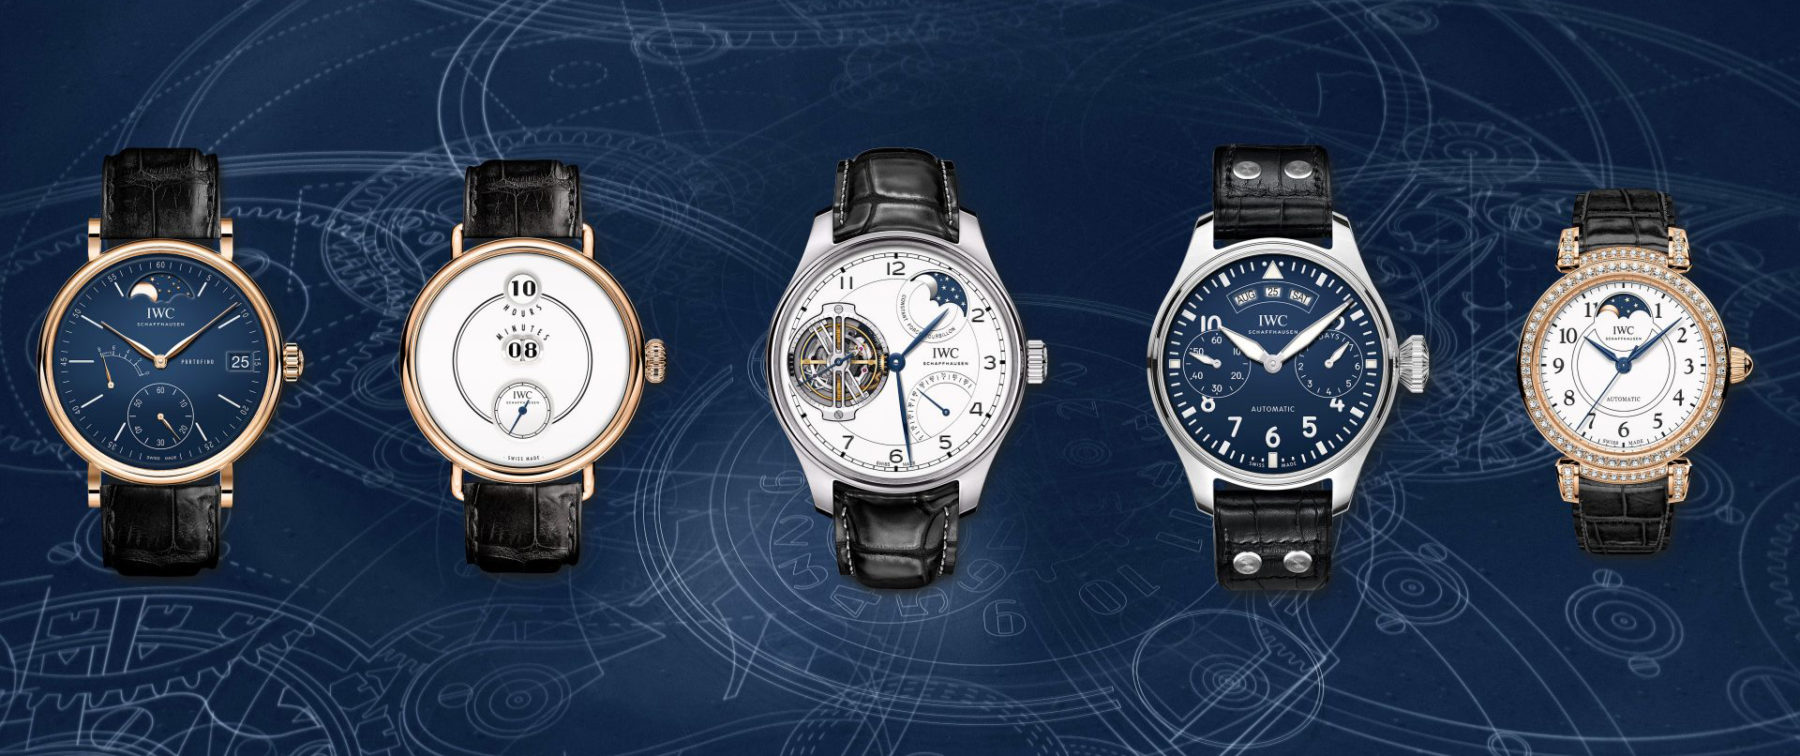 IWC-Jubilee-Collection-Geneve-Authorised-Retailer